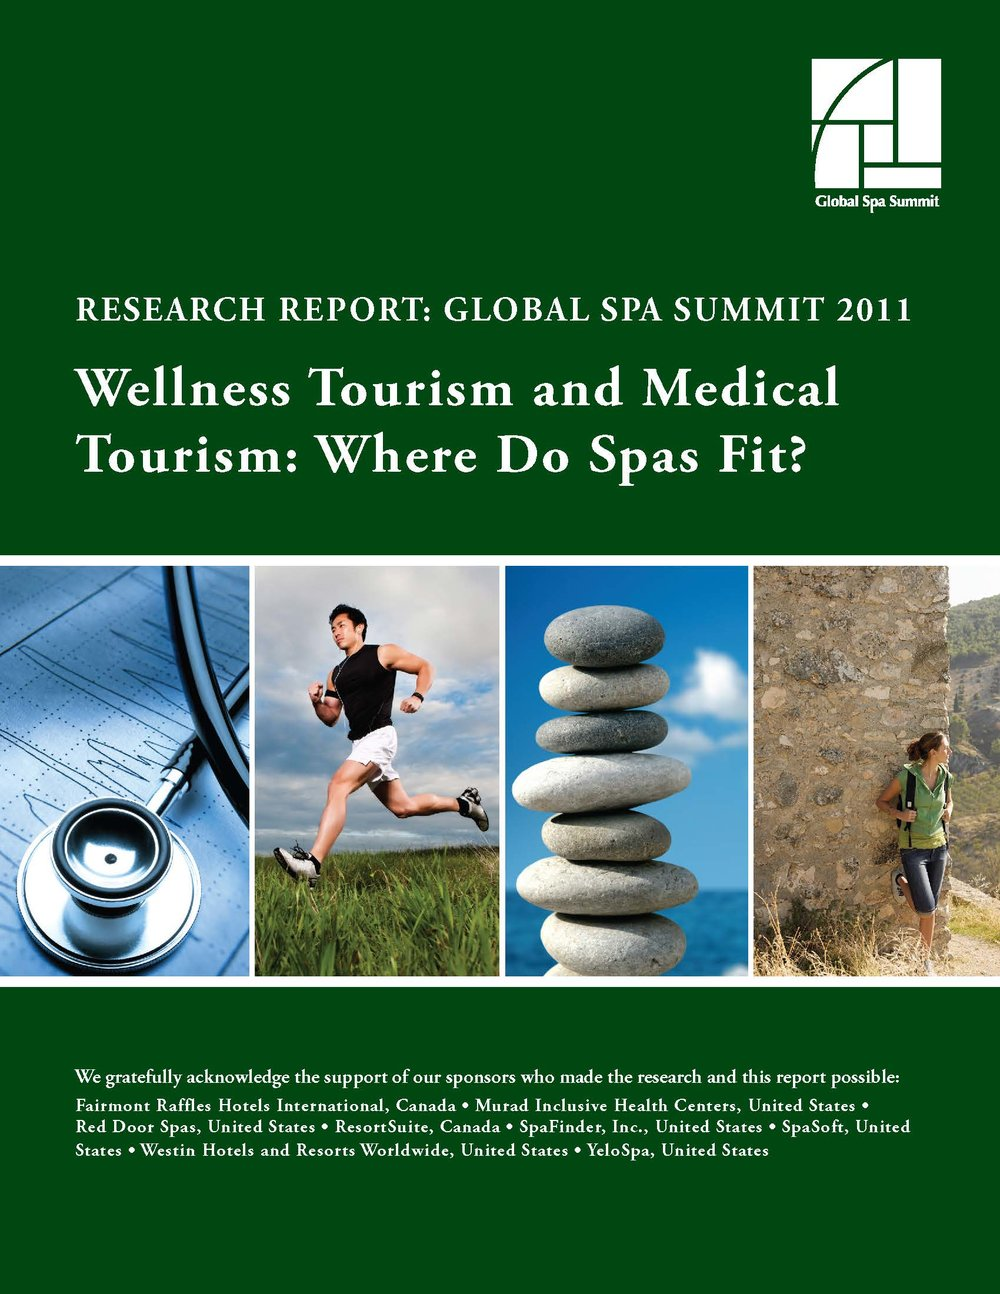 Pages from Wellness Tourism and Medical Tourism Report Final.jpg